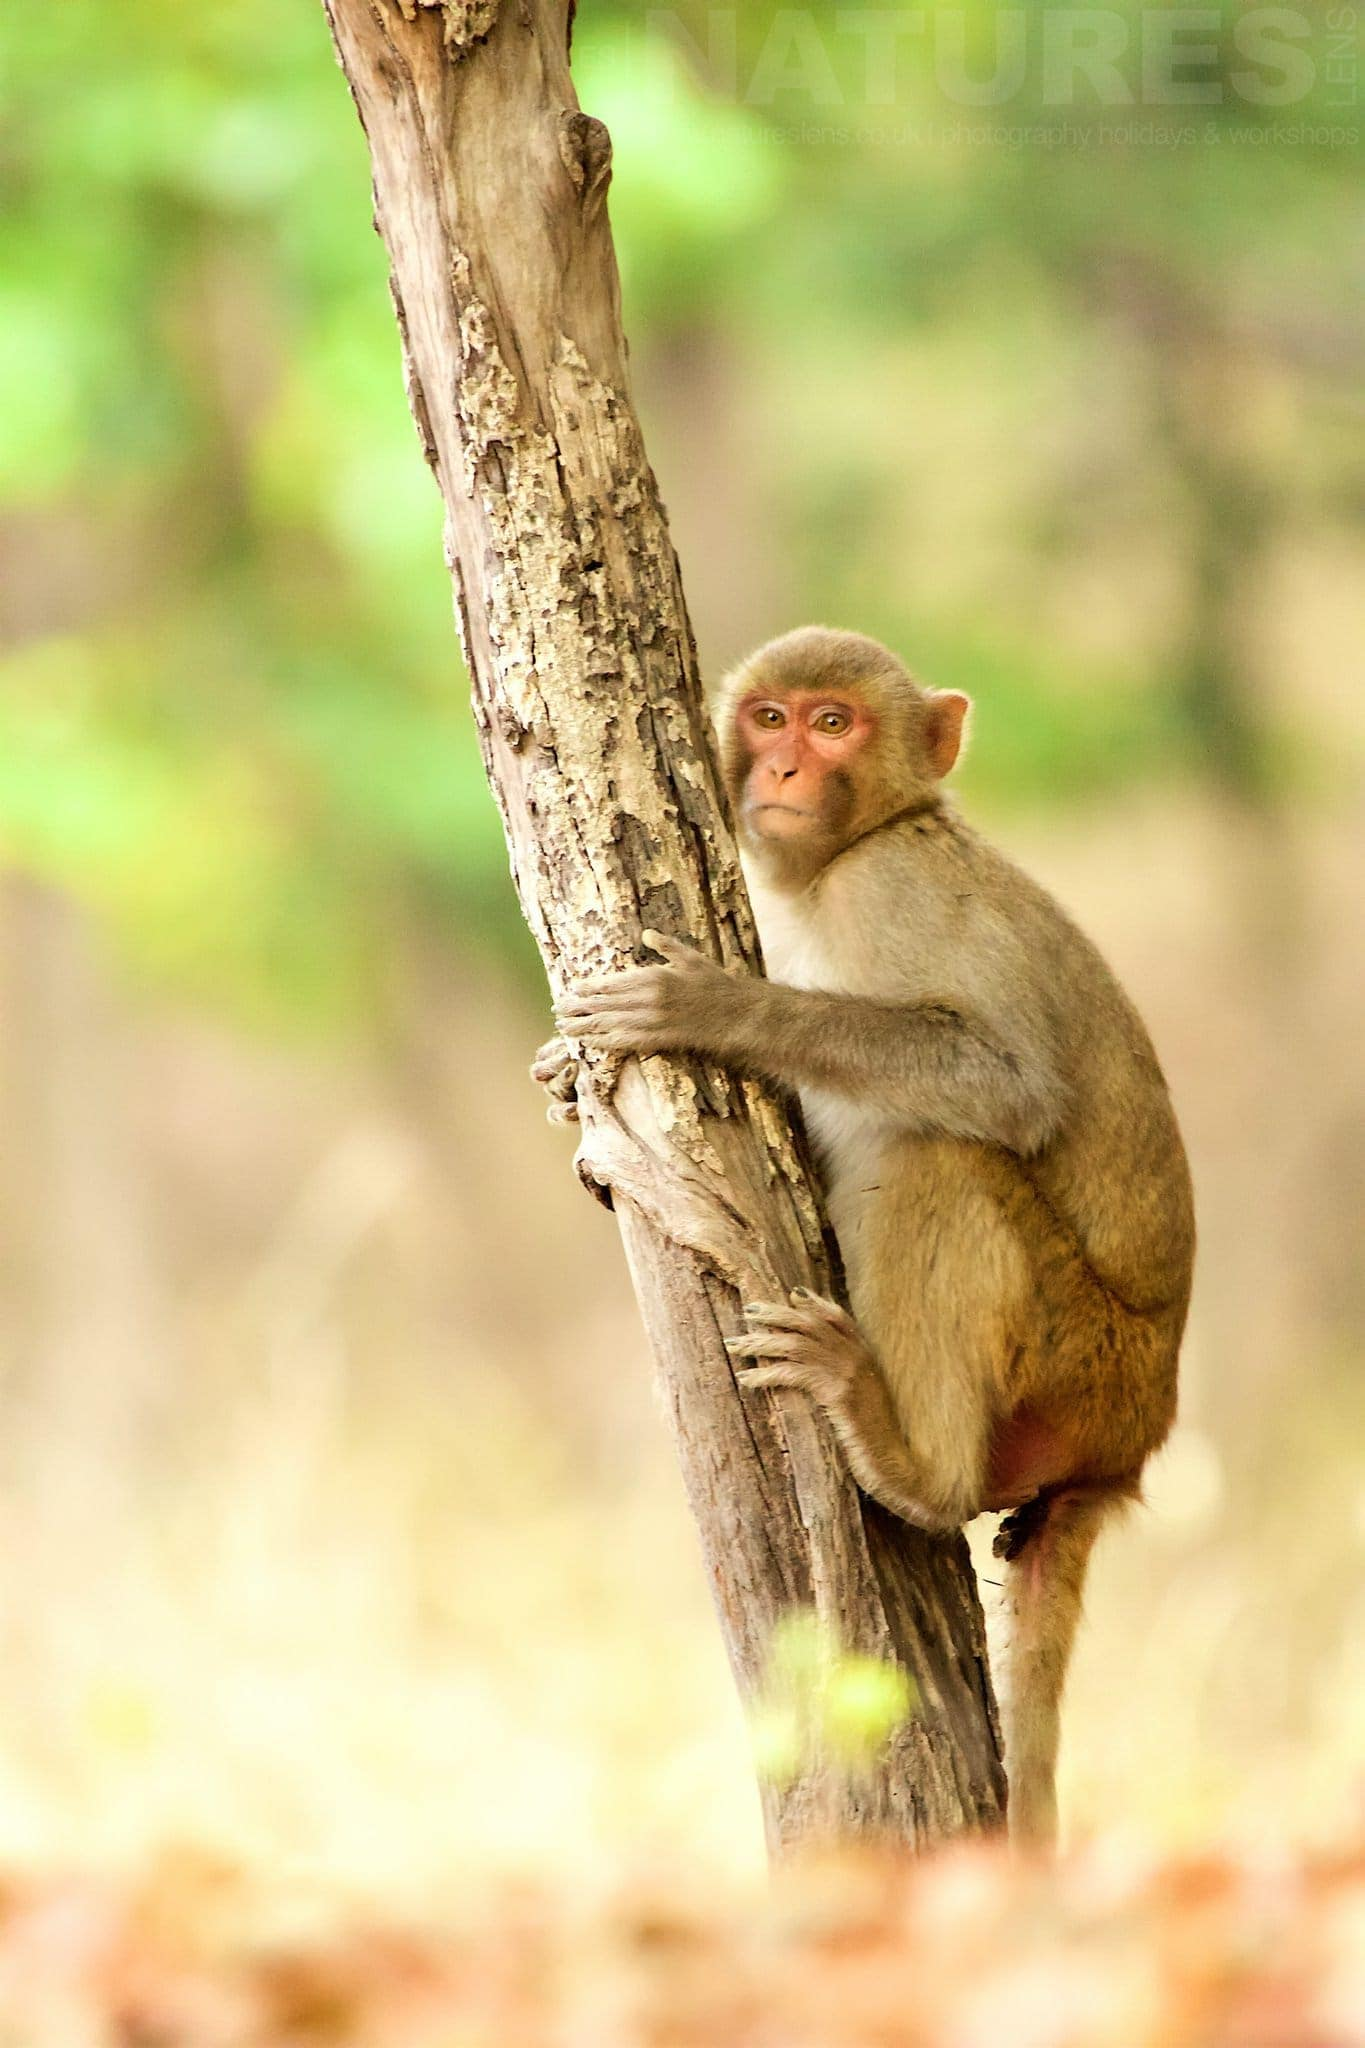 Rhesus Macaque Hugging A Tree As Photographed During The NaturesLens Tigers Of Bandhavgarh Photography Holiday